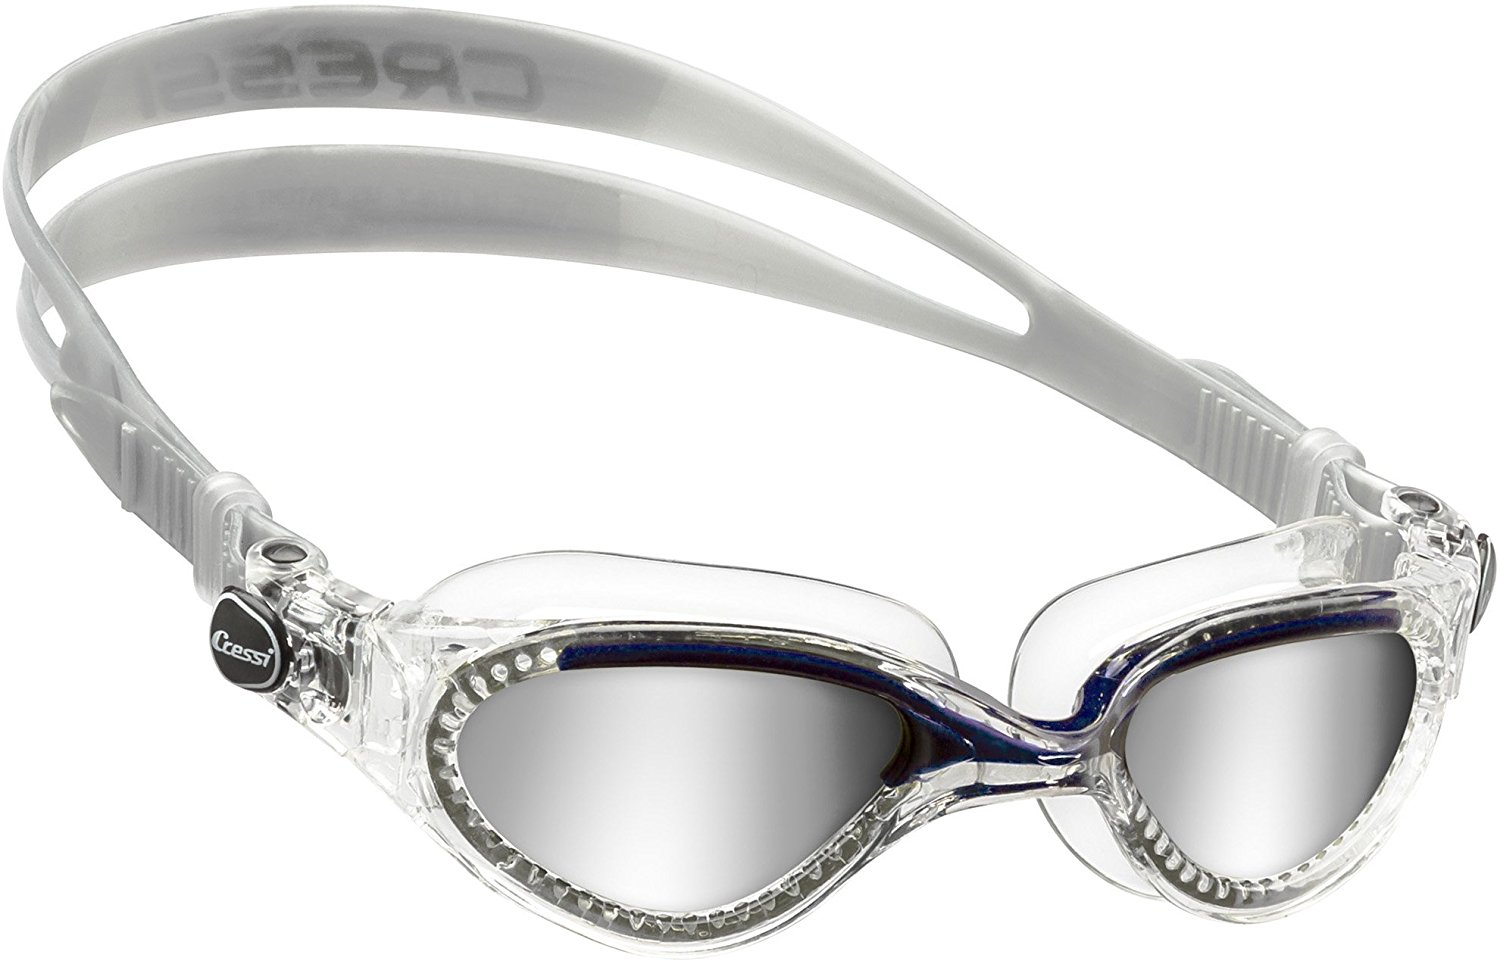 5dce94d09e77 If you view these goggles, you will see the TYR Nest Pro, and Cressi Goggle  come in a range of different tints and lens coatings. As previously  mentioned ...